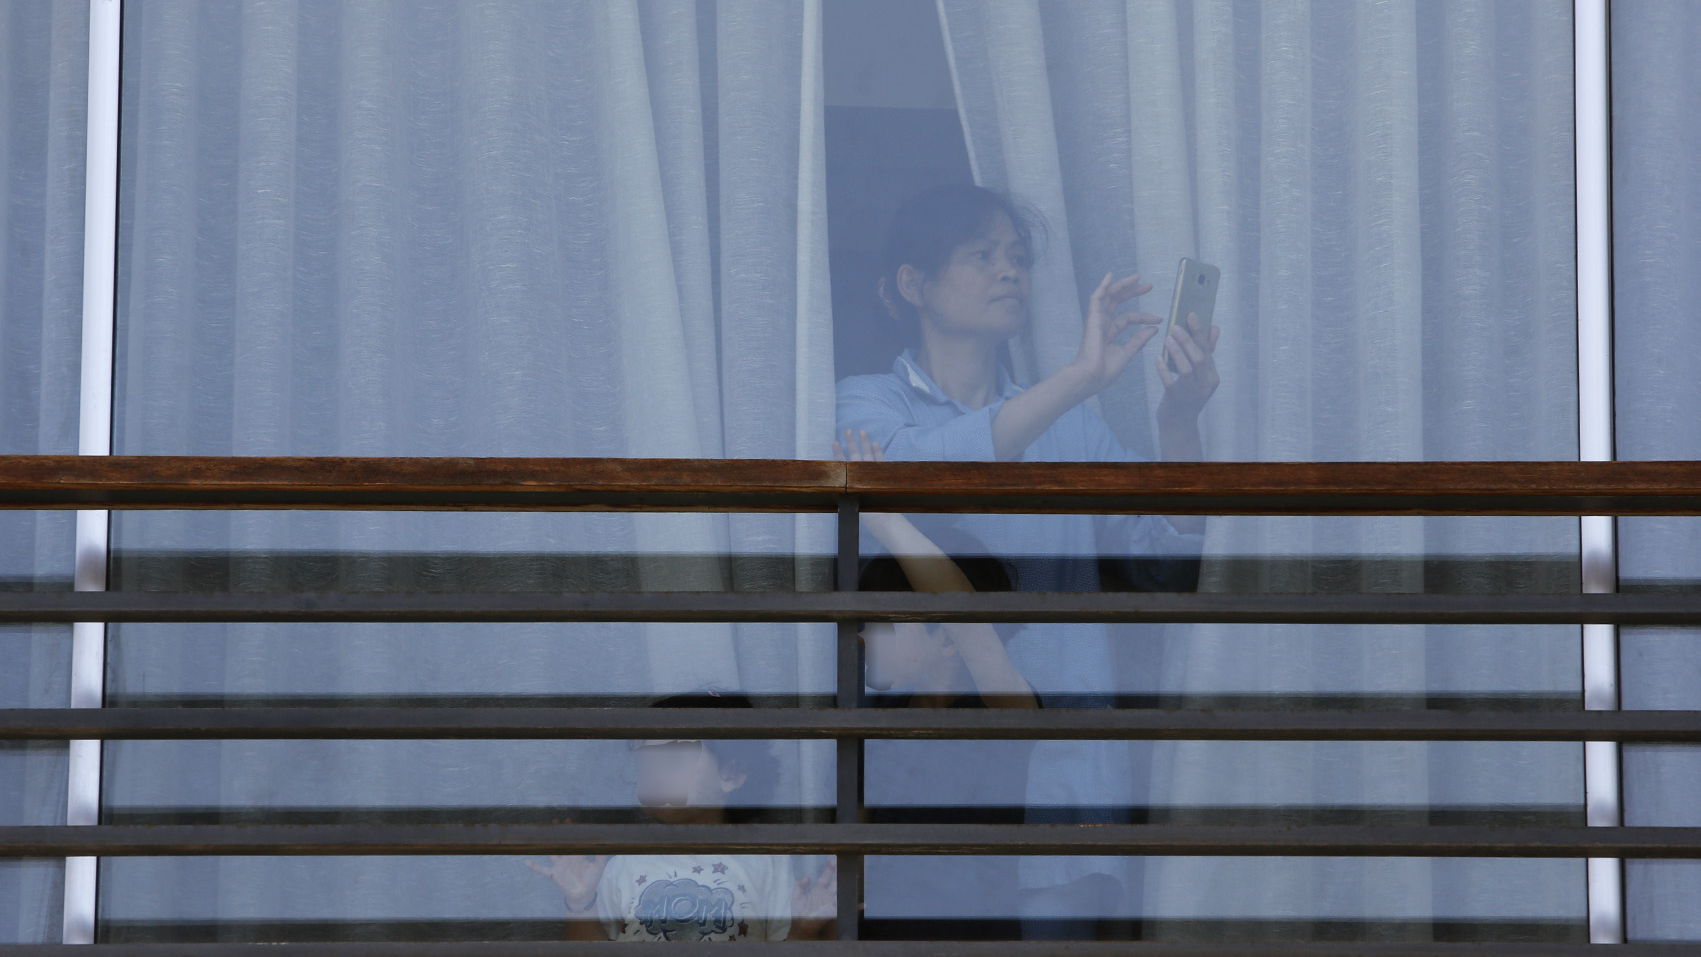 A migrant domestic worker films a May Day march as it passes by her employer's home. Beirut, Lebanon. May 1, 2020. (Marwan Tahtah/The Public Source)